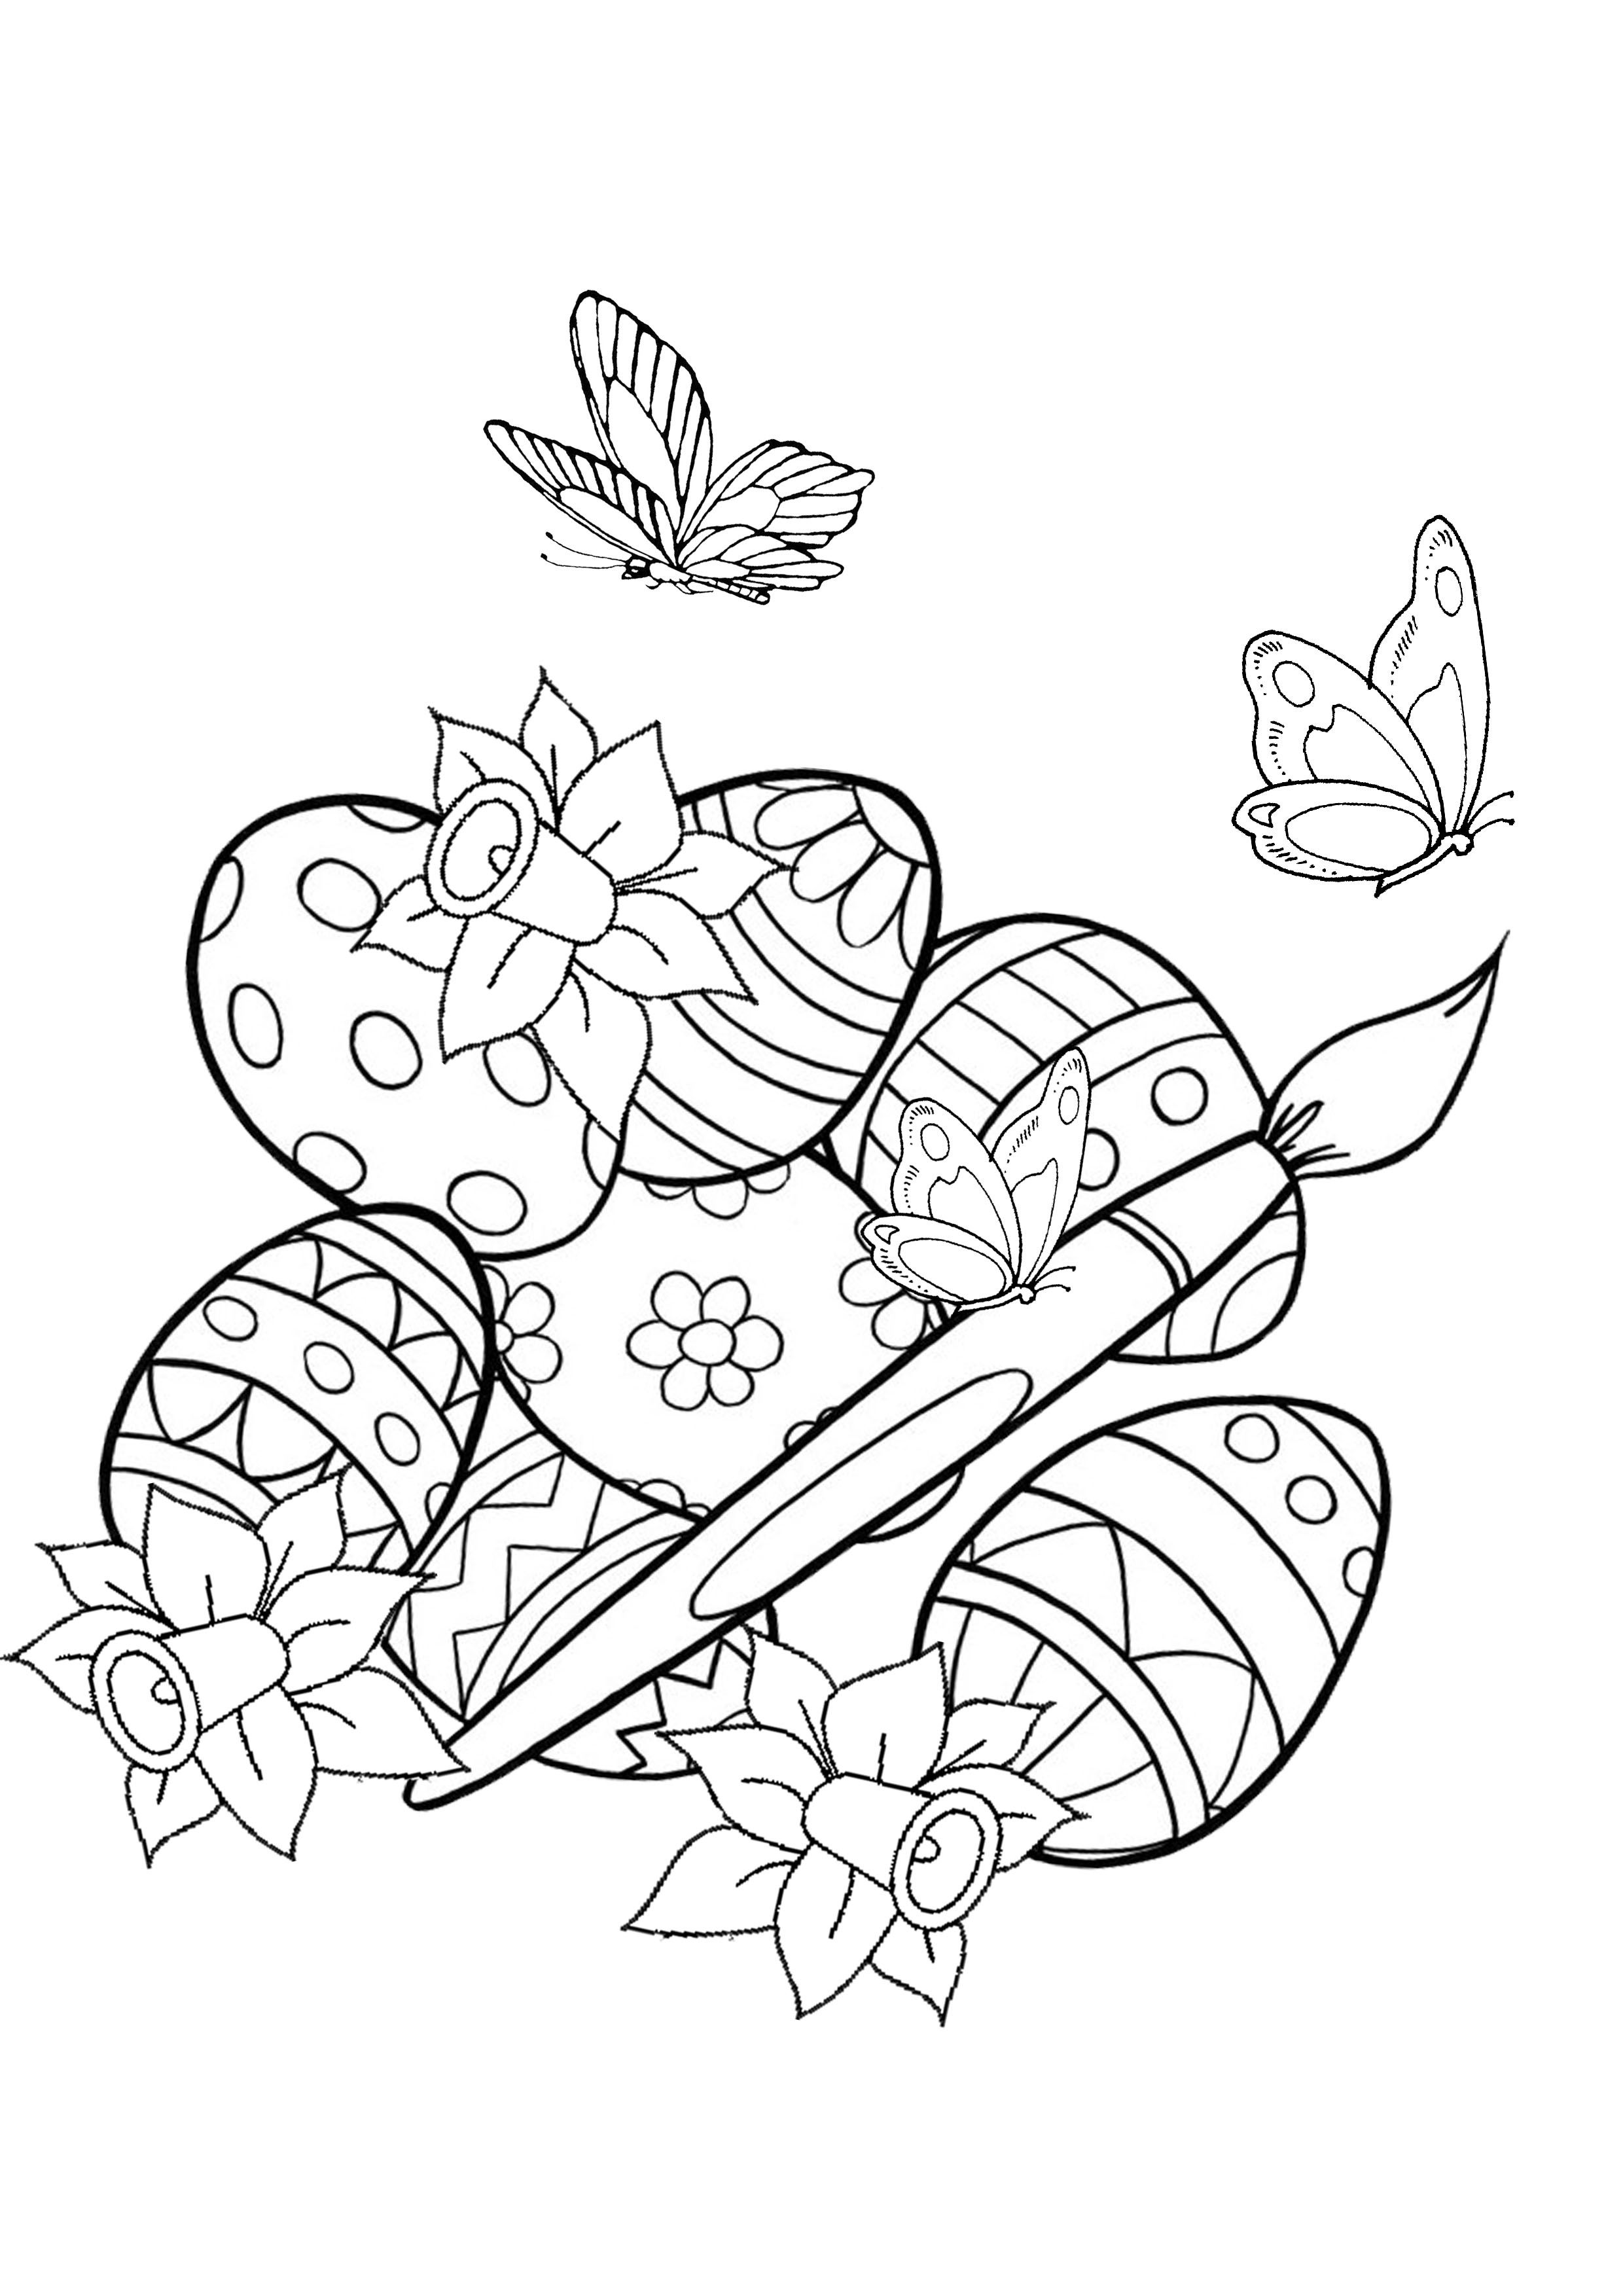 It is a graphic of Légend Free Printable Spring Coloring Pages for Adults